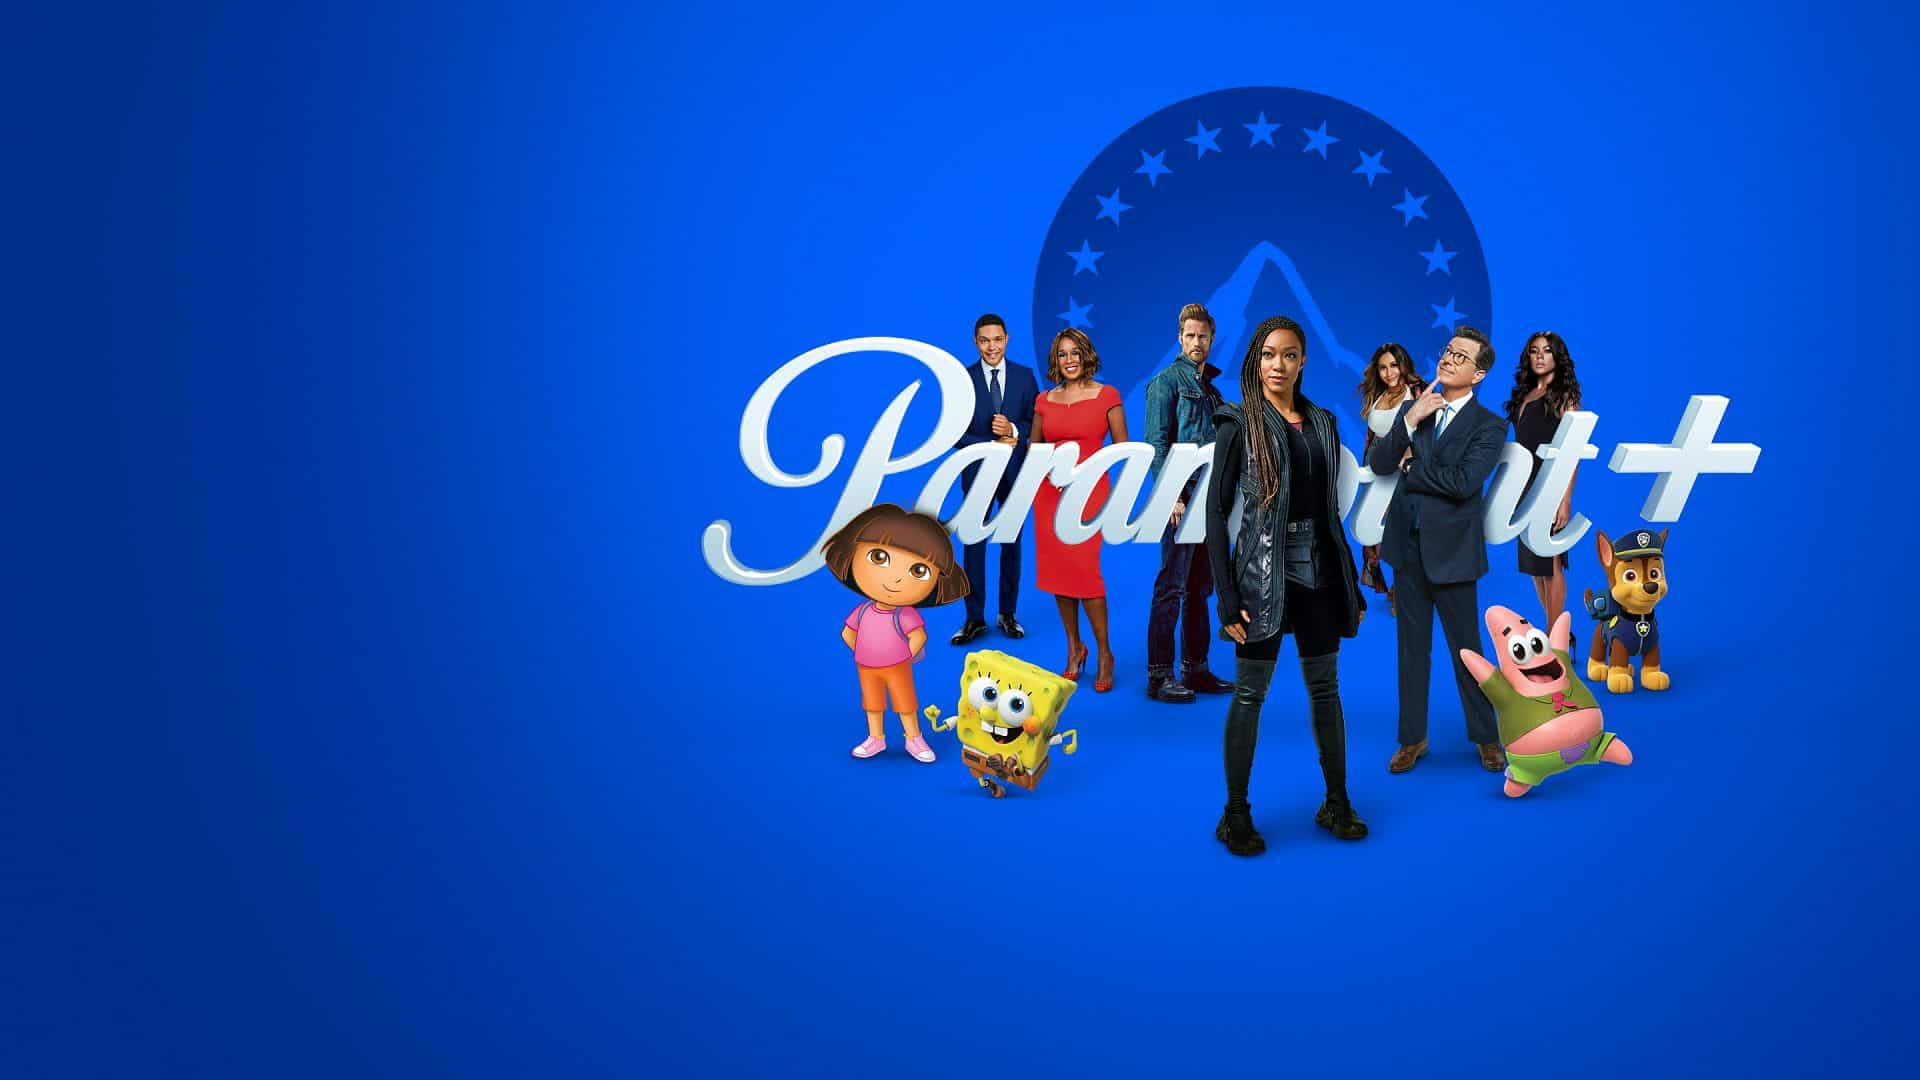 CBS All Access will be rebranded as Paramount+ on March 4